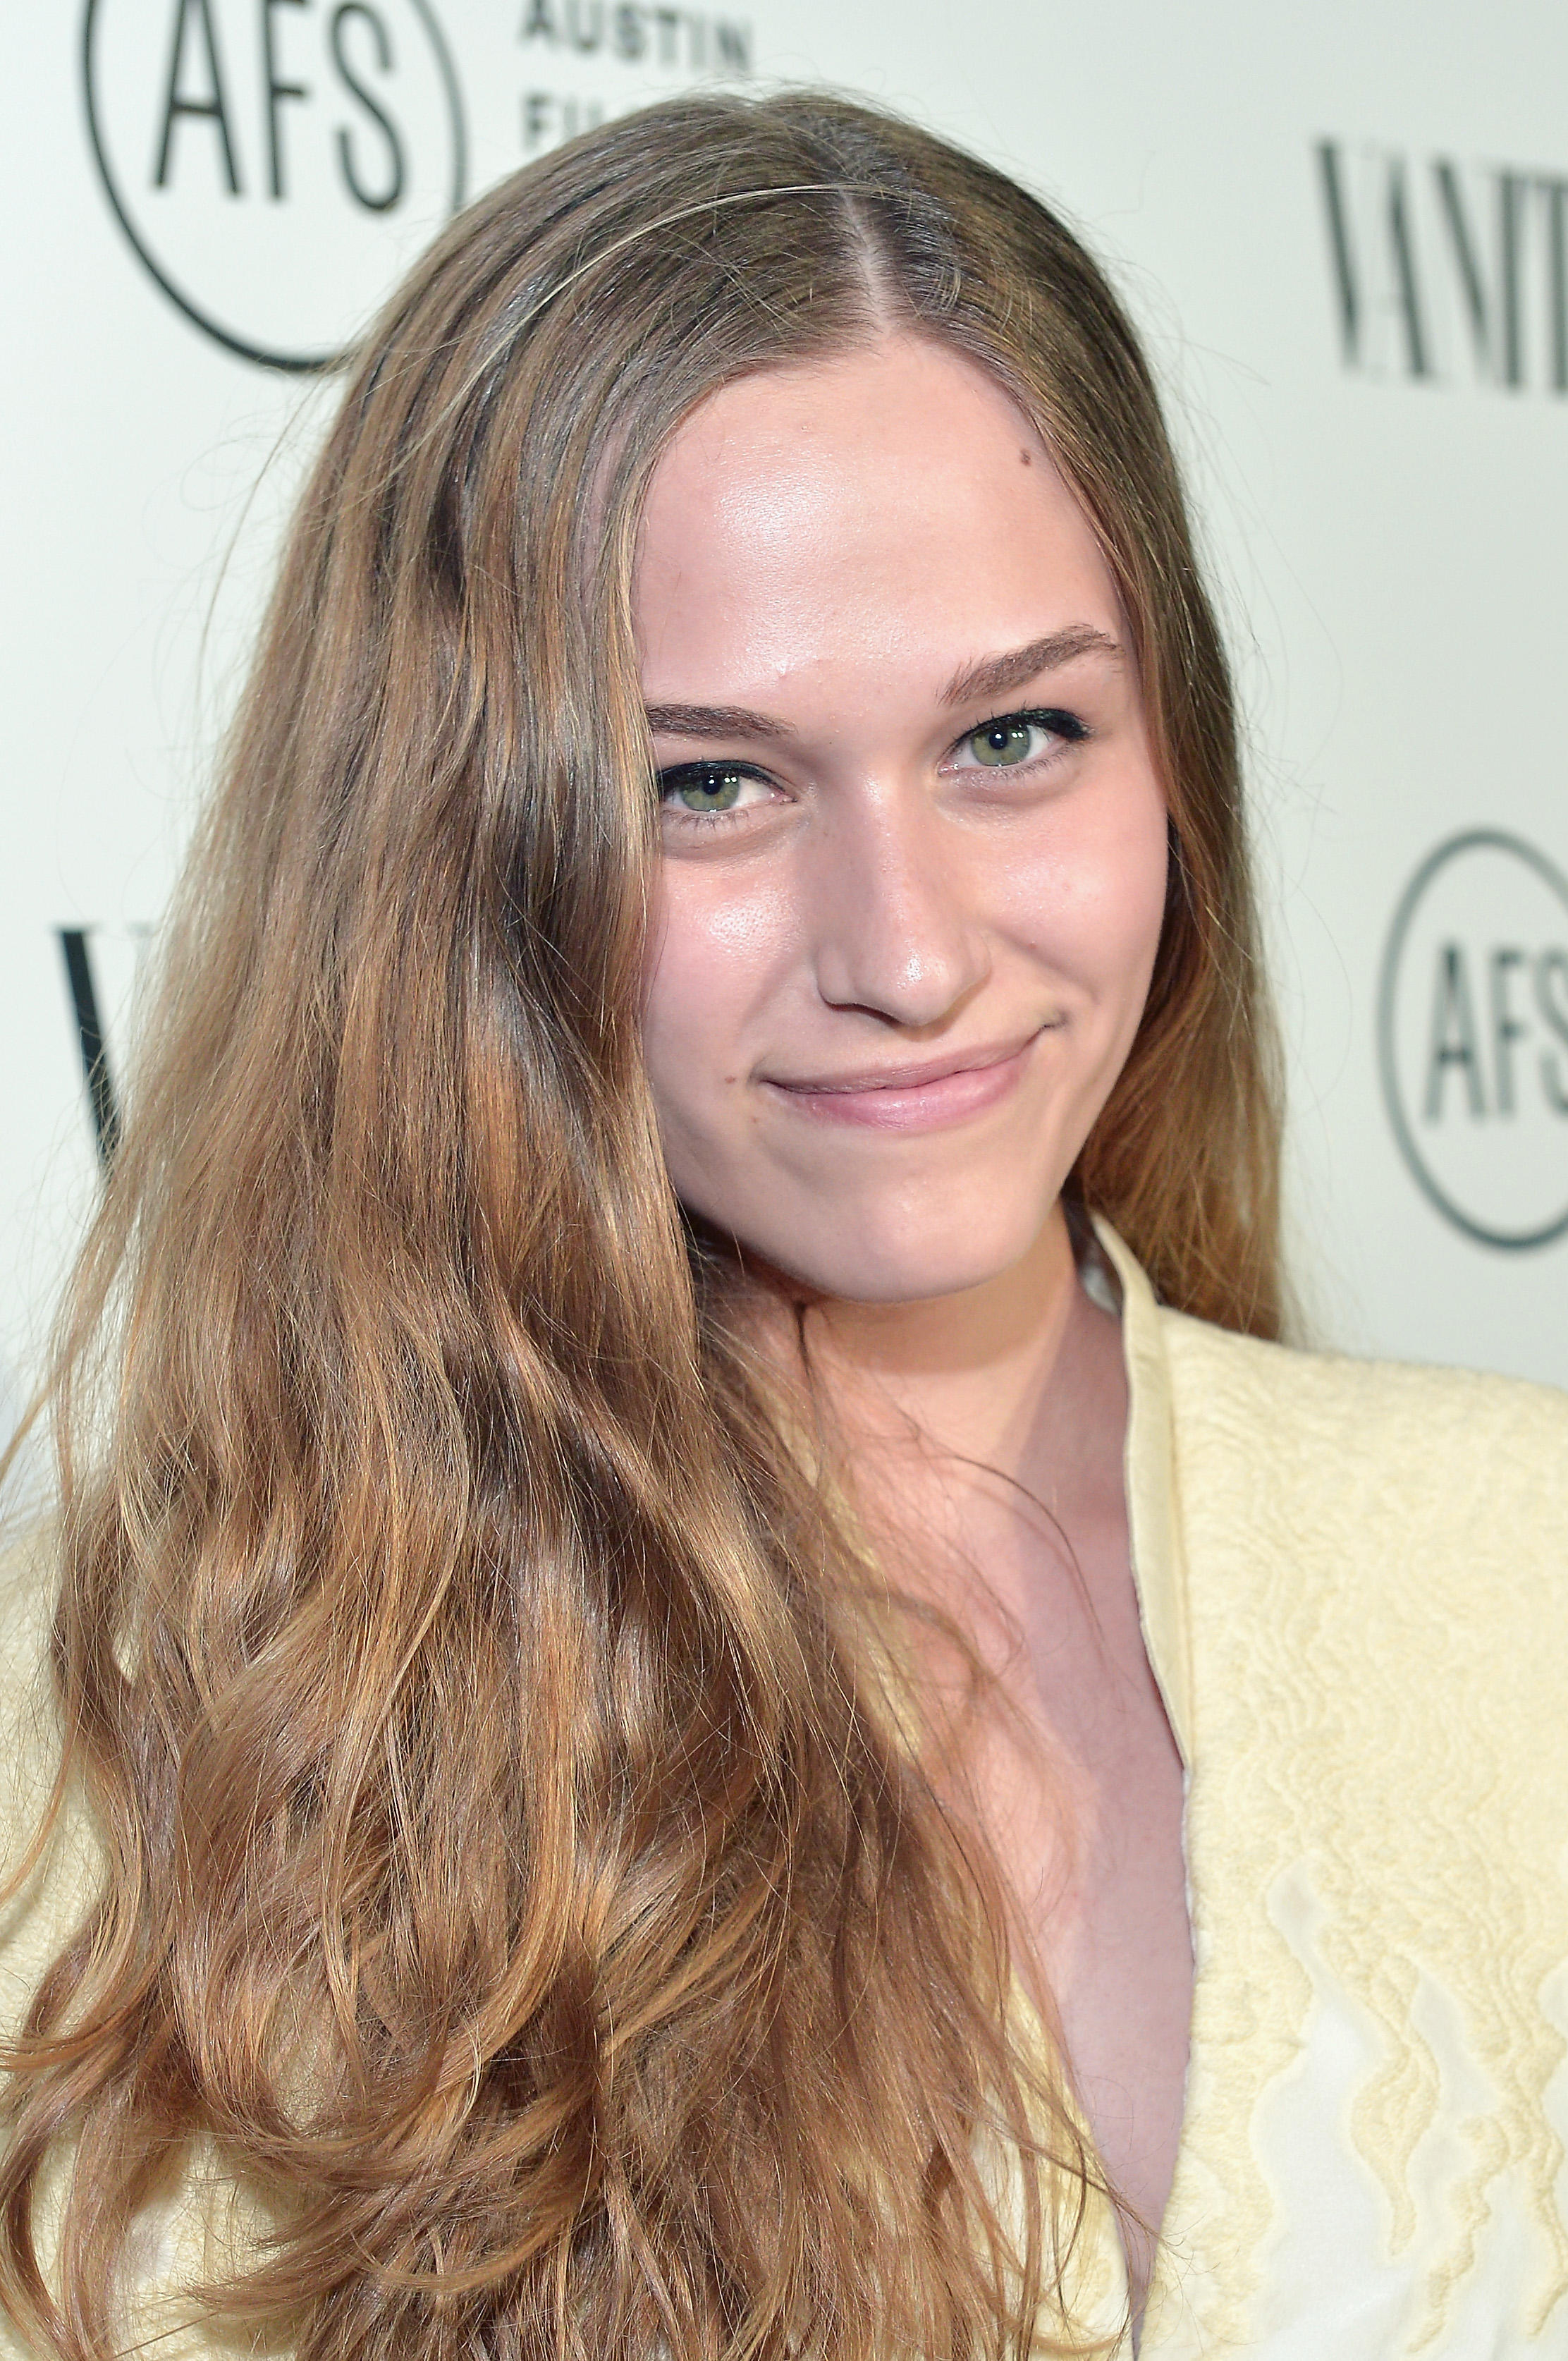 Zoe Graham at the VANITY FAIR and Chrysler Celebration of Richard Linklater and the cast of 'Boyhood' at Cecconi's.